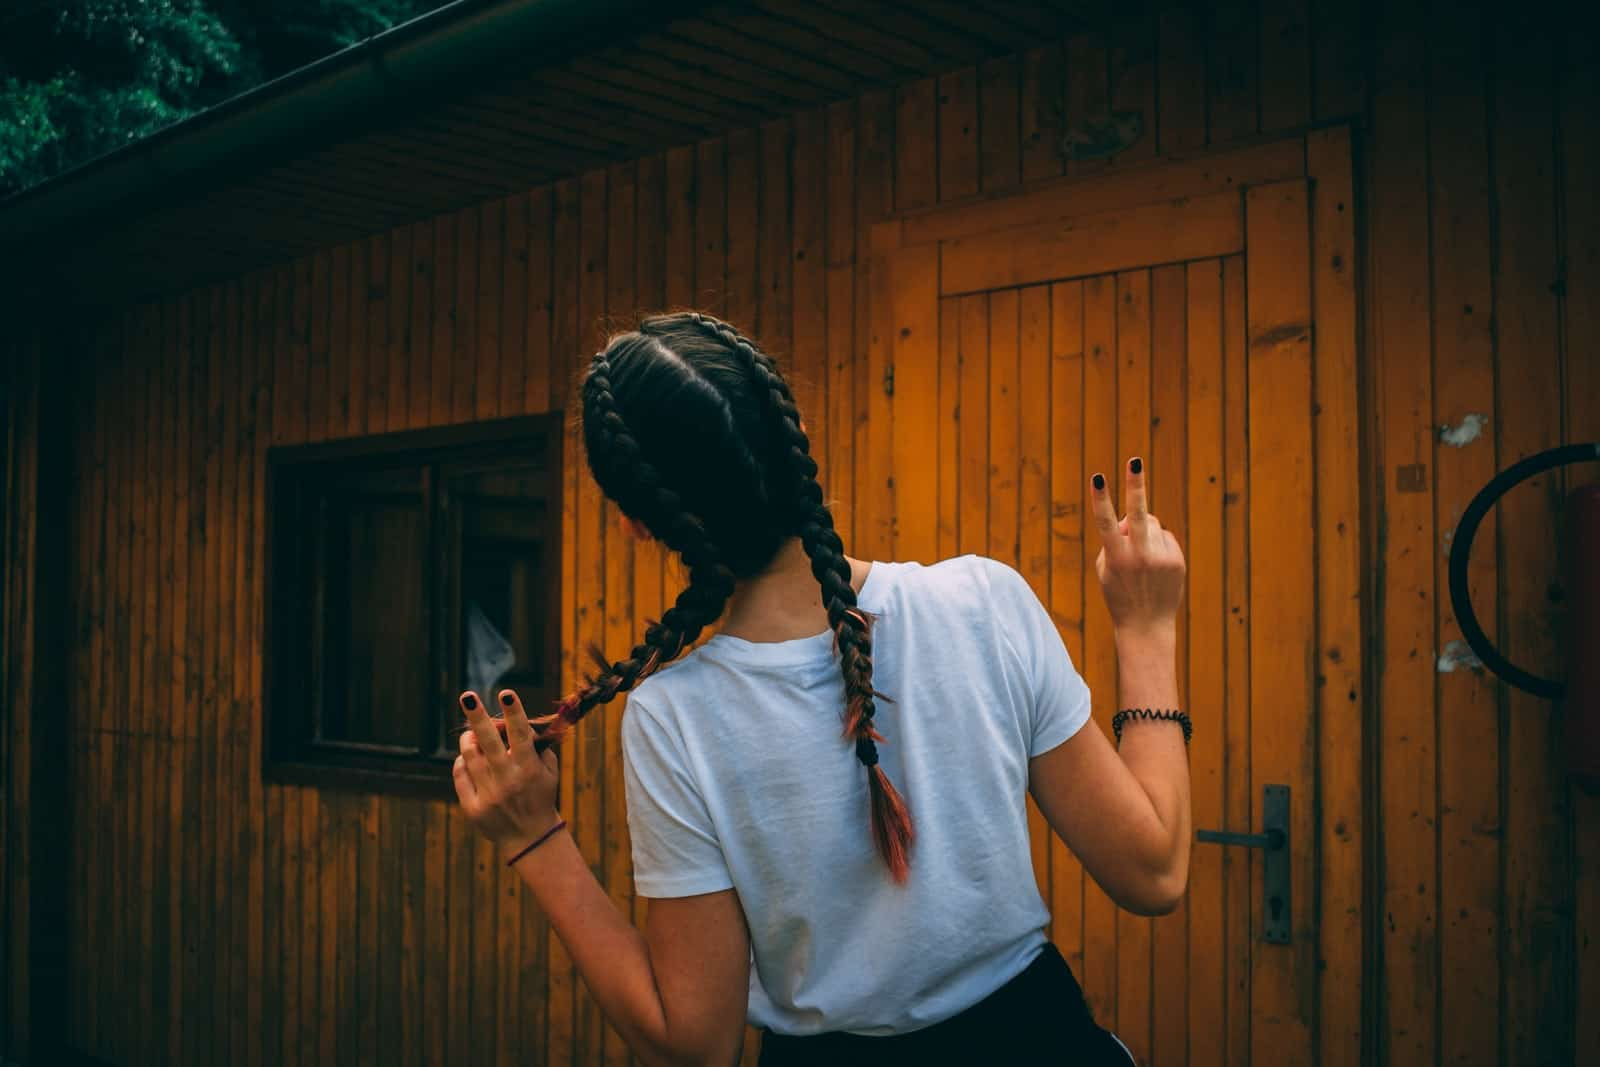 Woman with braided hair outside wooden shack / shed